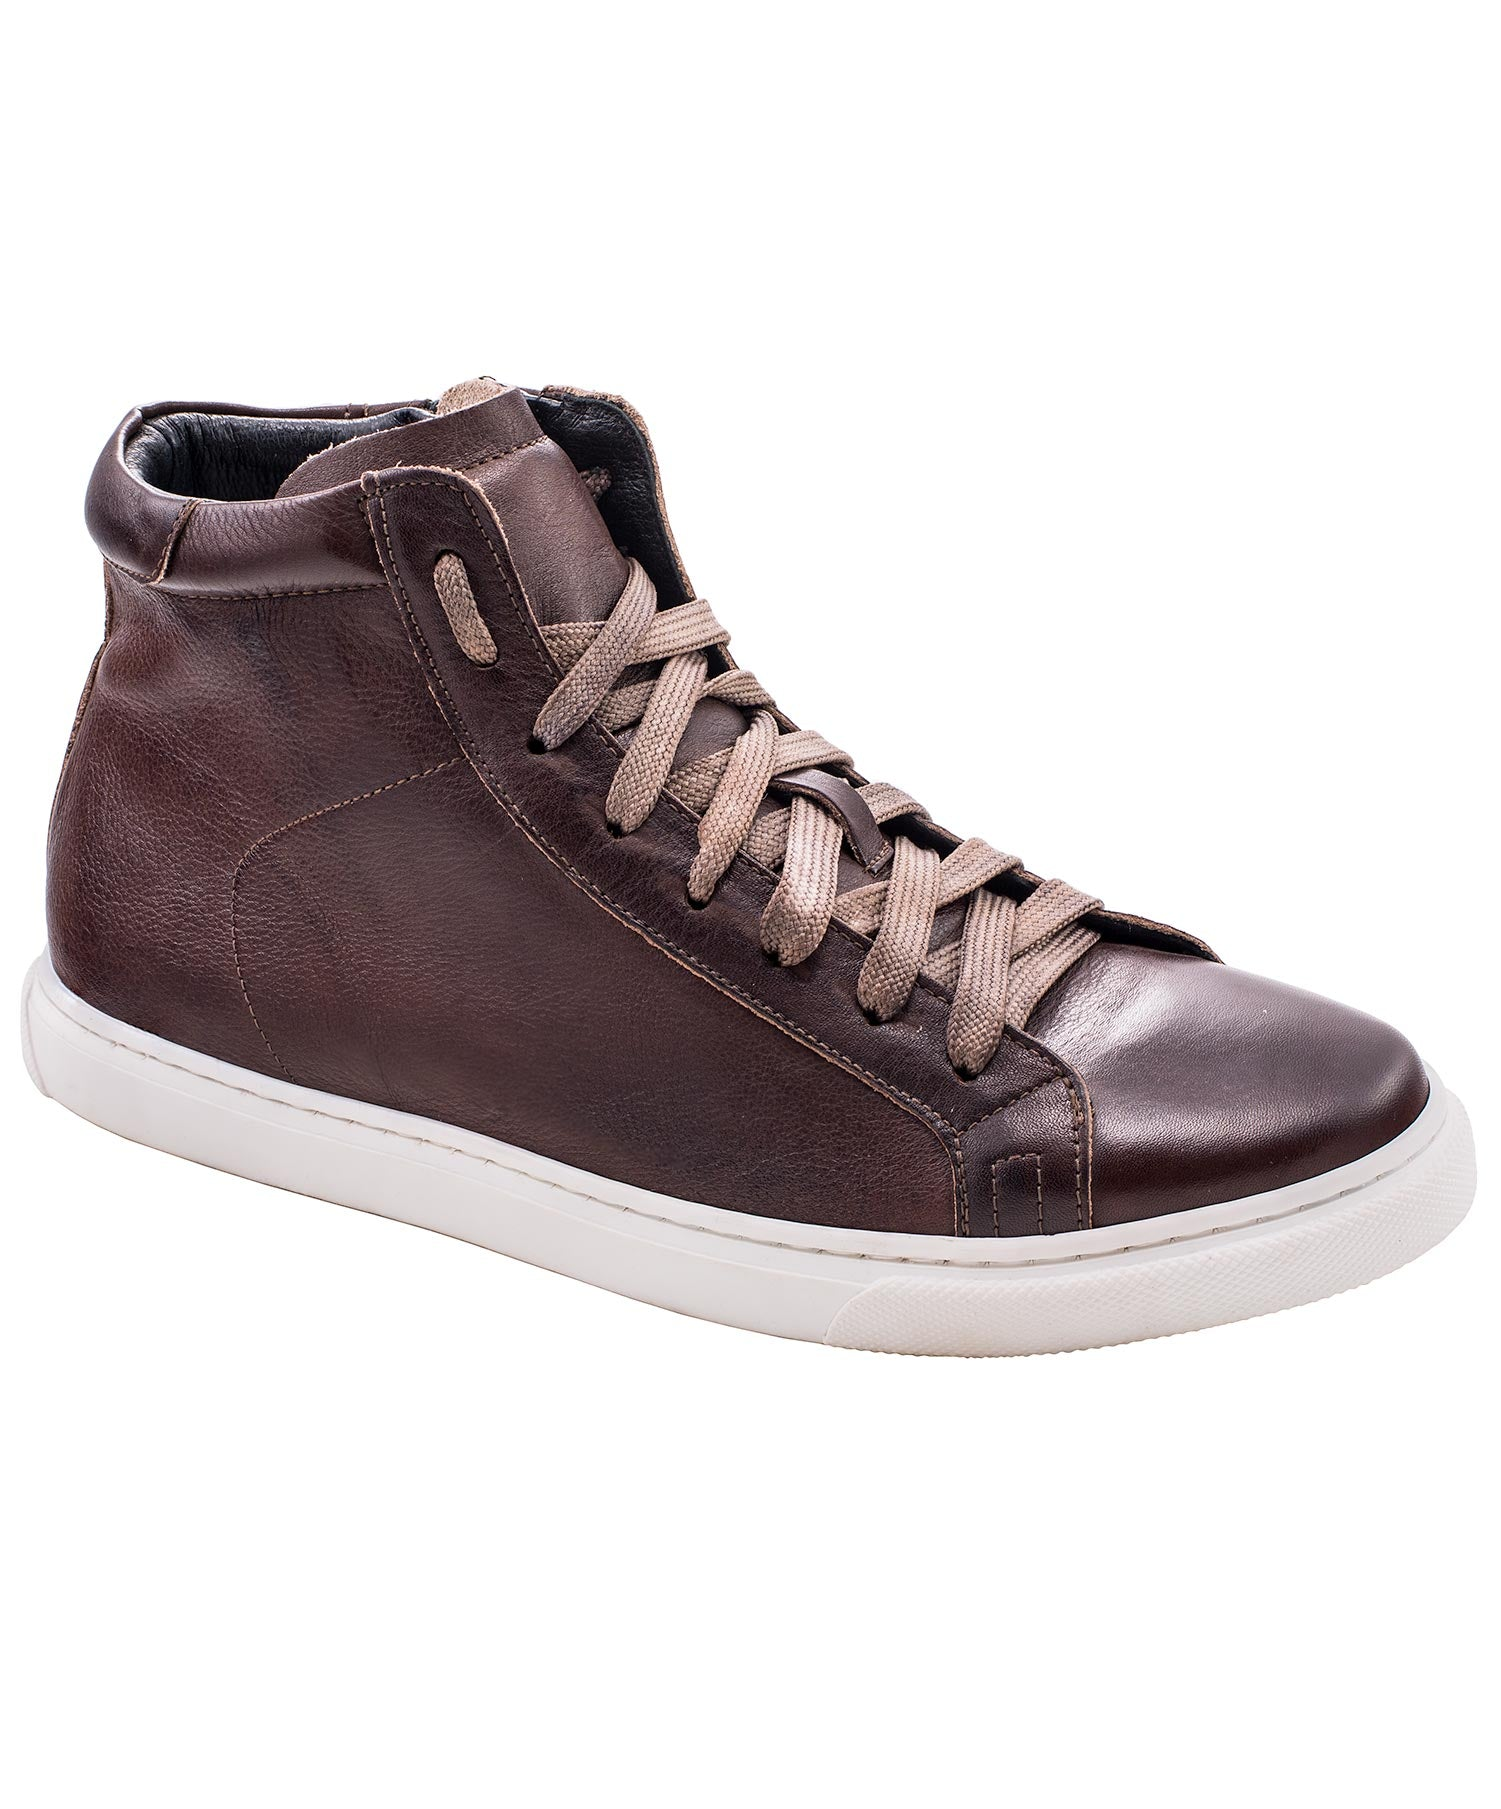 Vito Tobacco Leather High Top Shoes